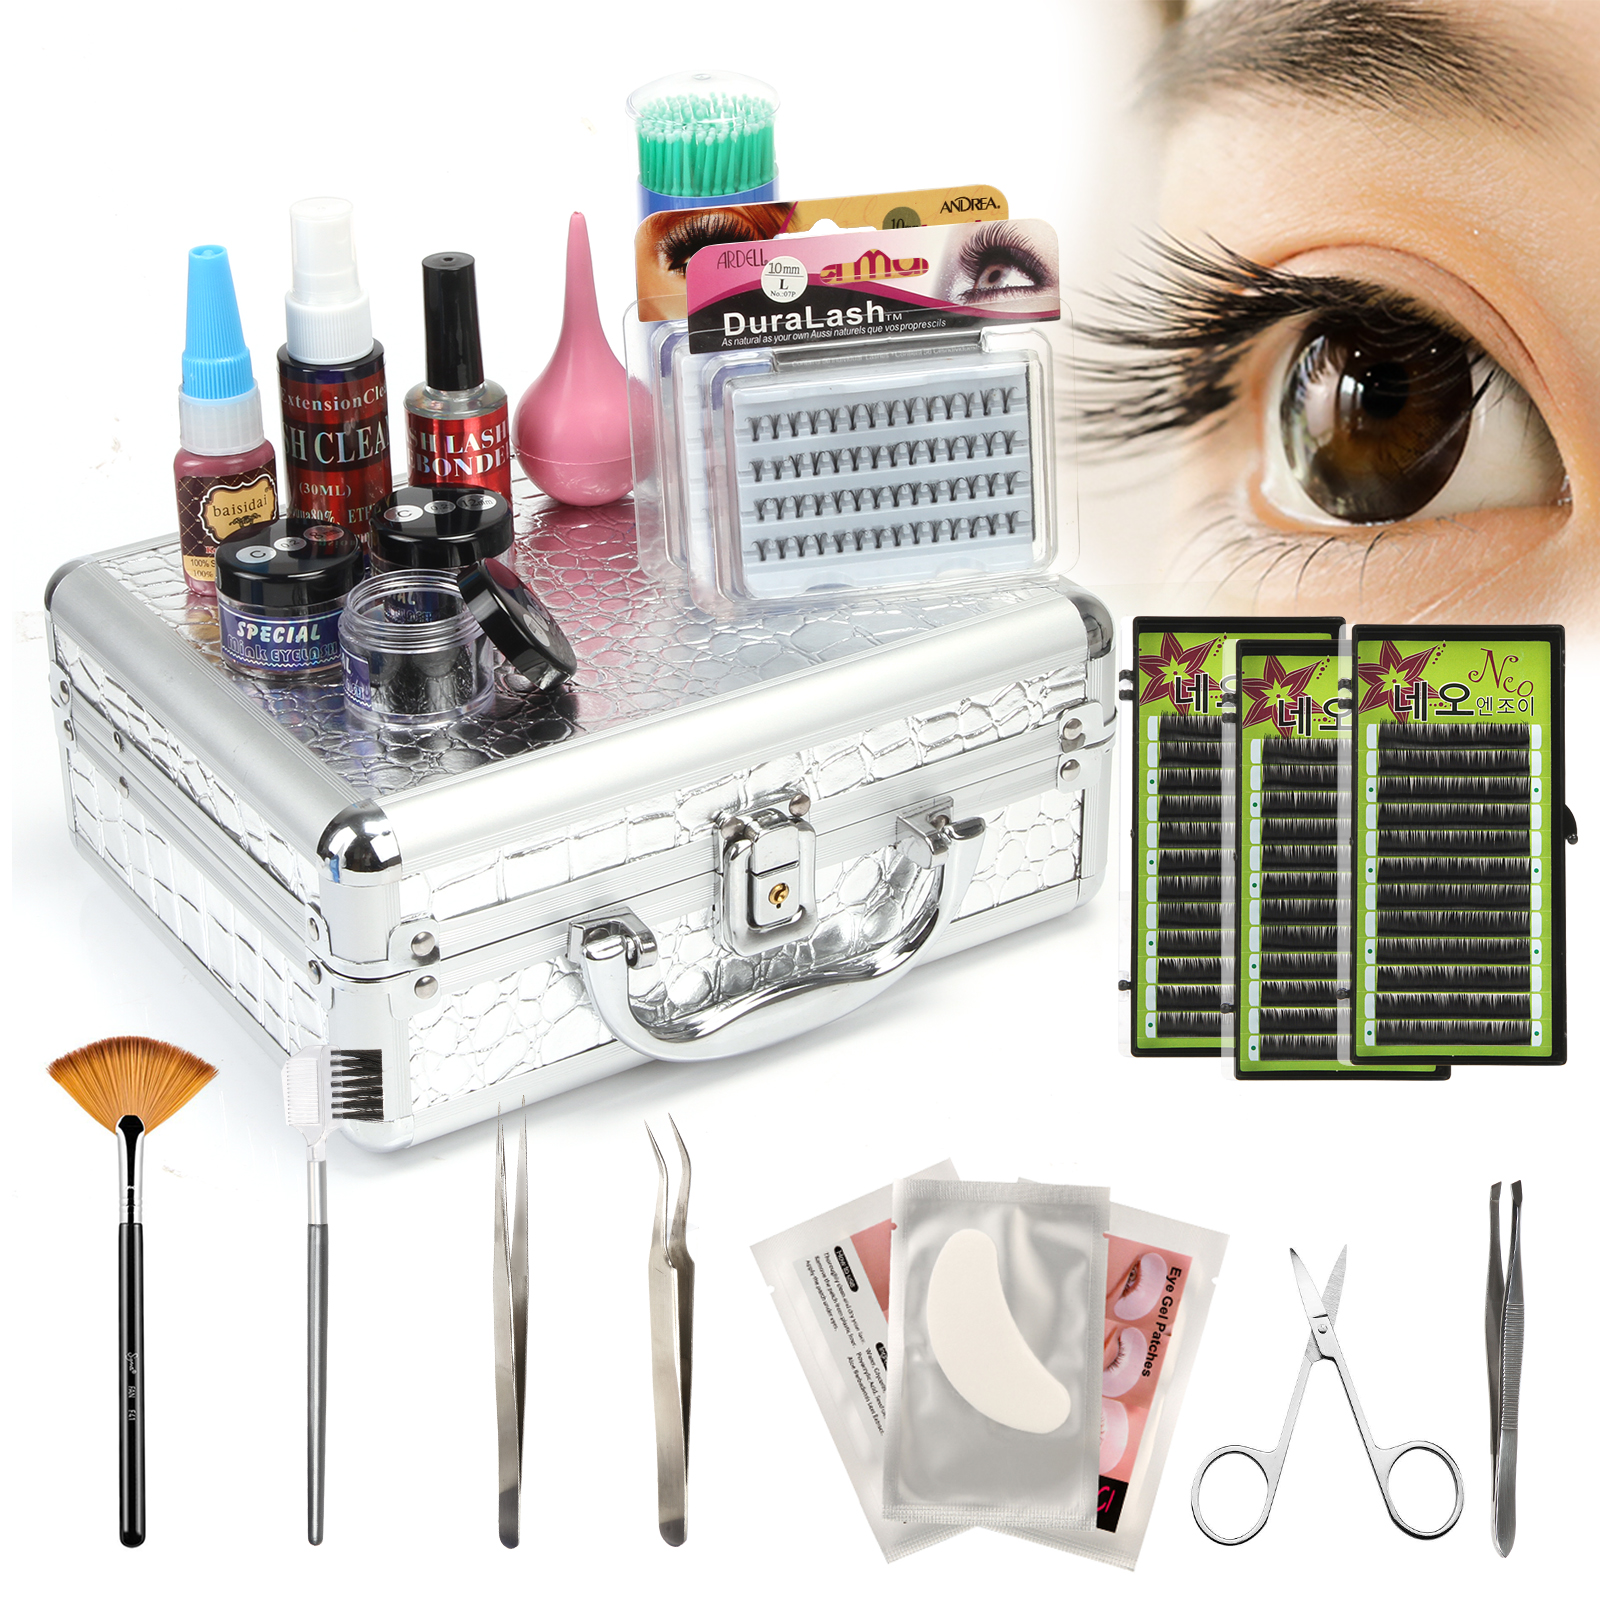 Anmas Rucci False Lashes Individual Extension Eyelash Micro Brushes Glue Tools Kits Case SetAnmas Rucci False Lashes Individual Extension Eyelash Micro Brushes Glue Tools Kits Case Set